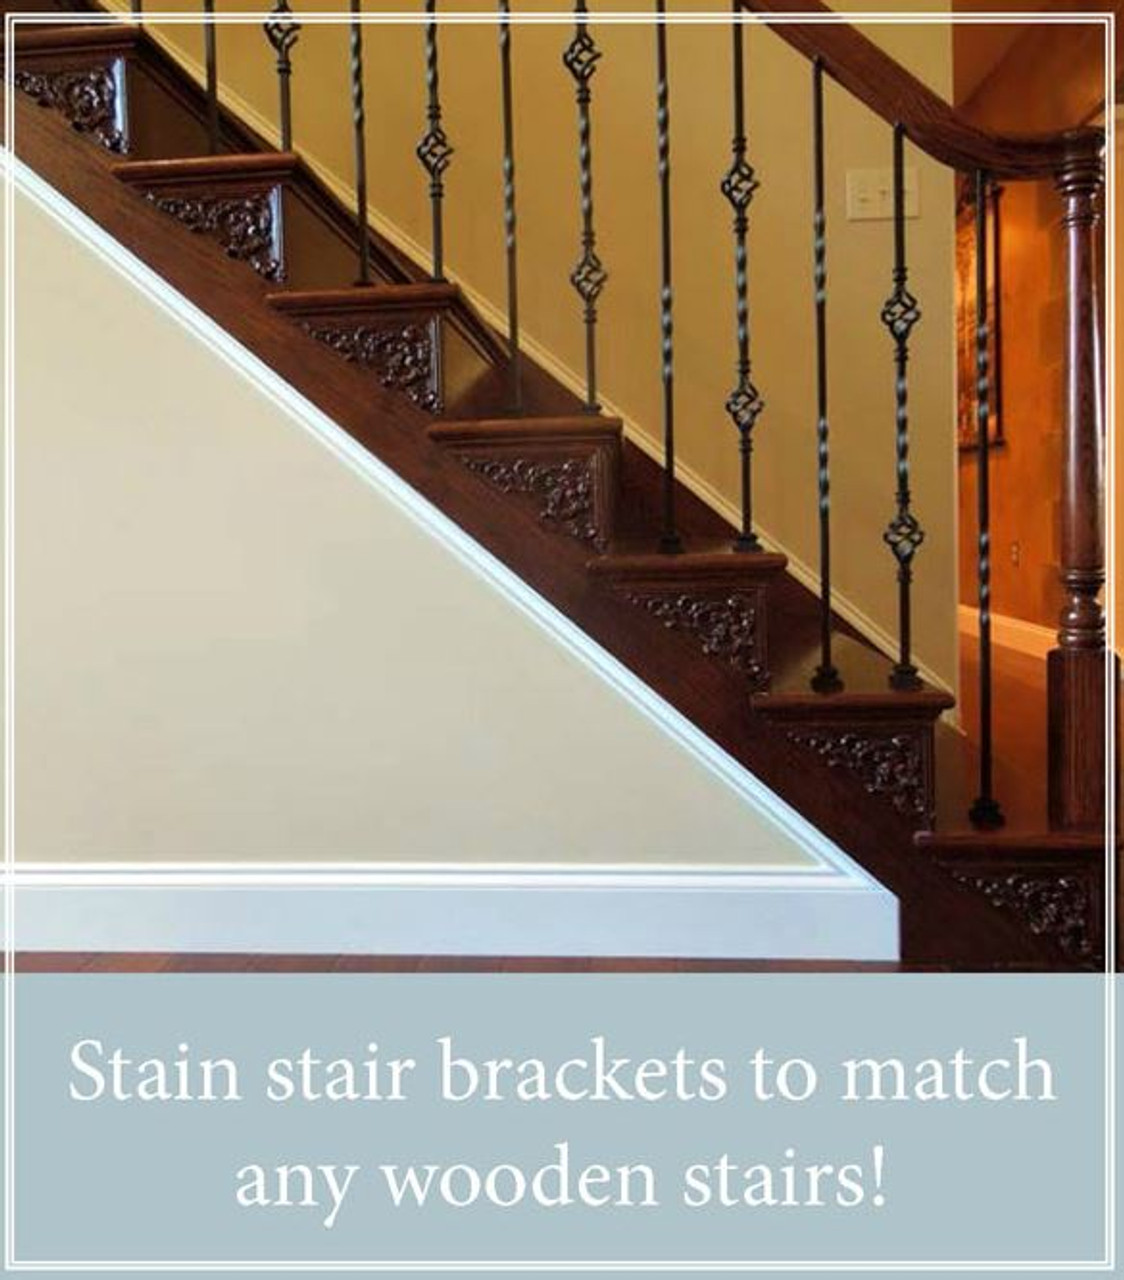 Stain stair brackets to match any wood stairs